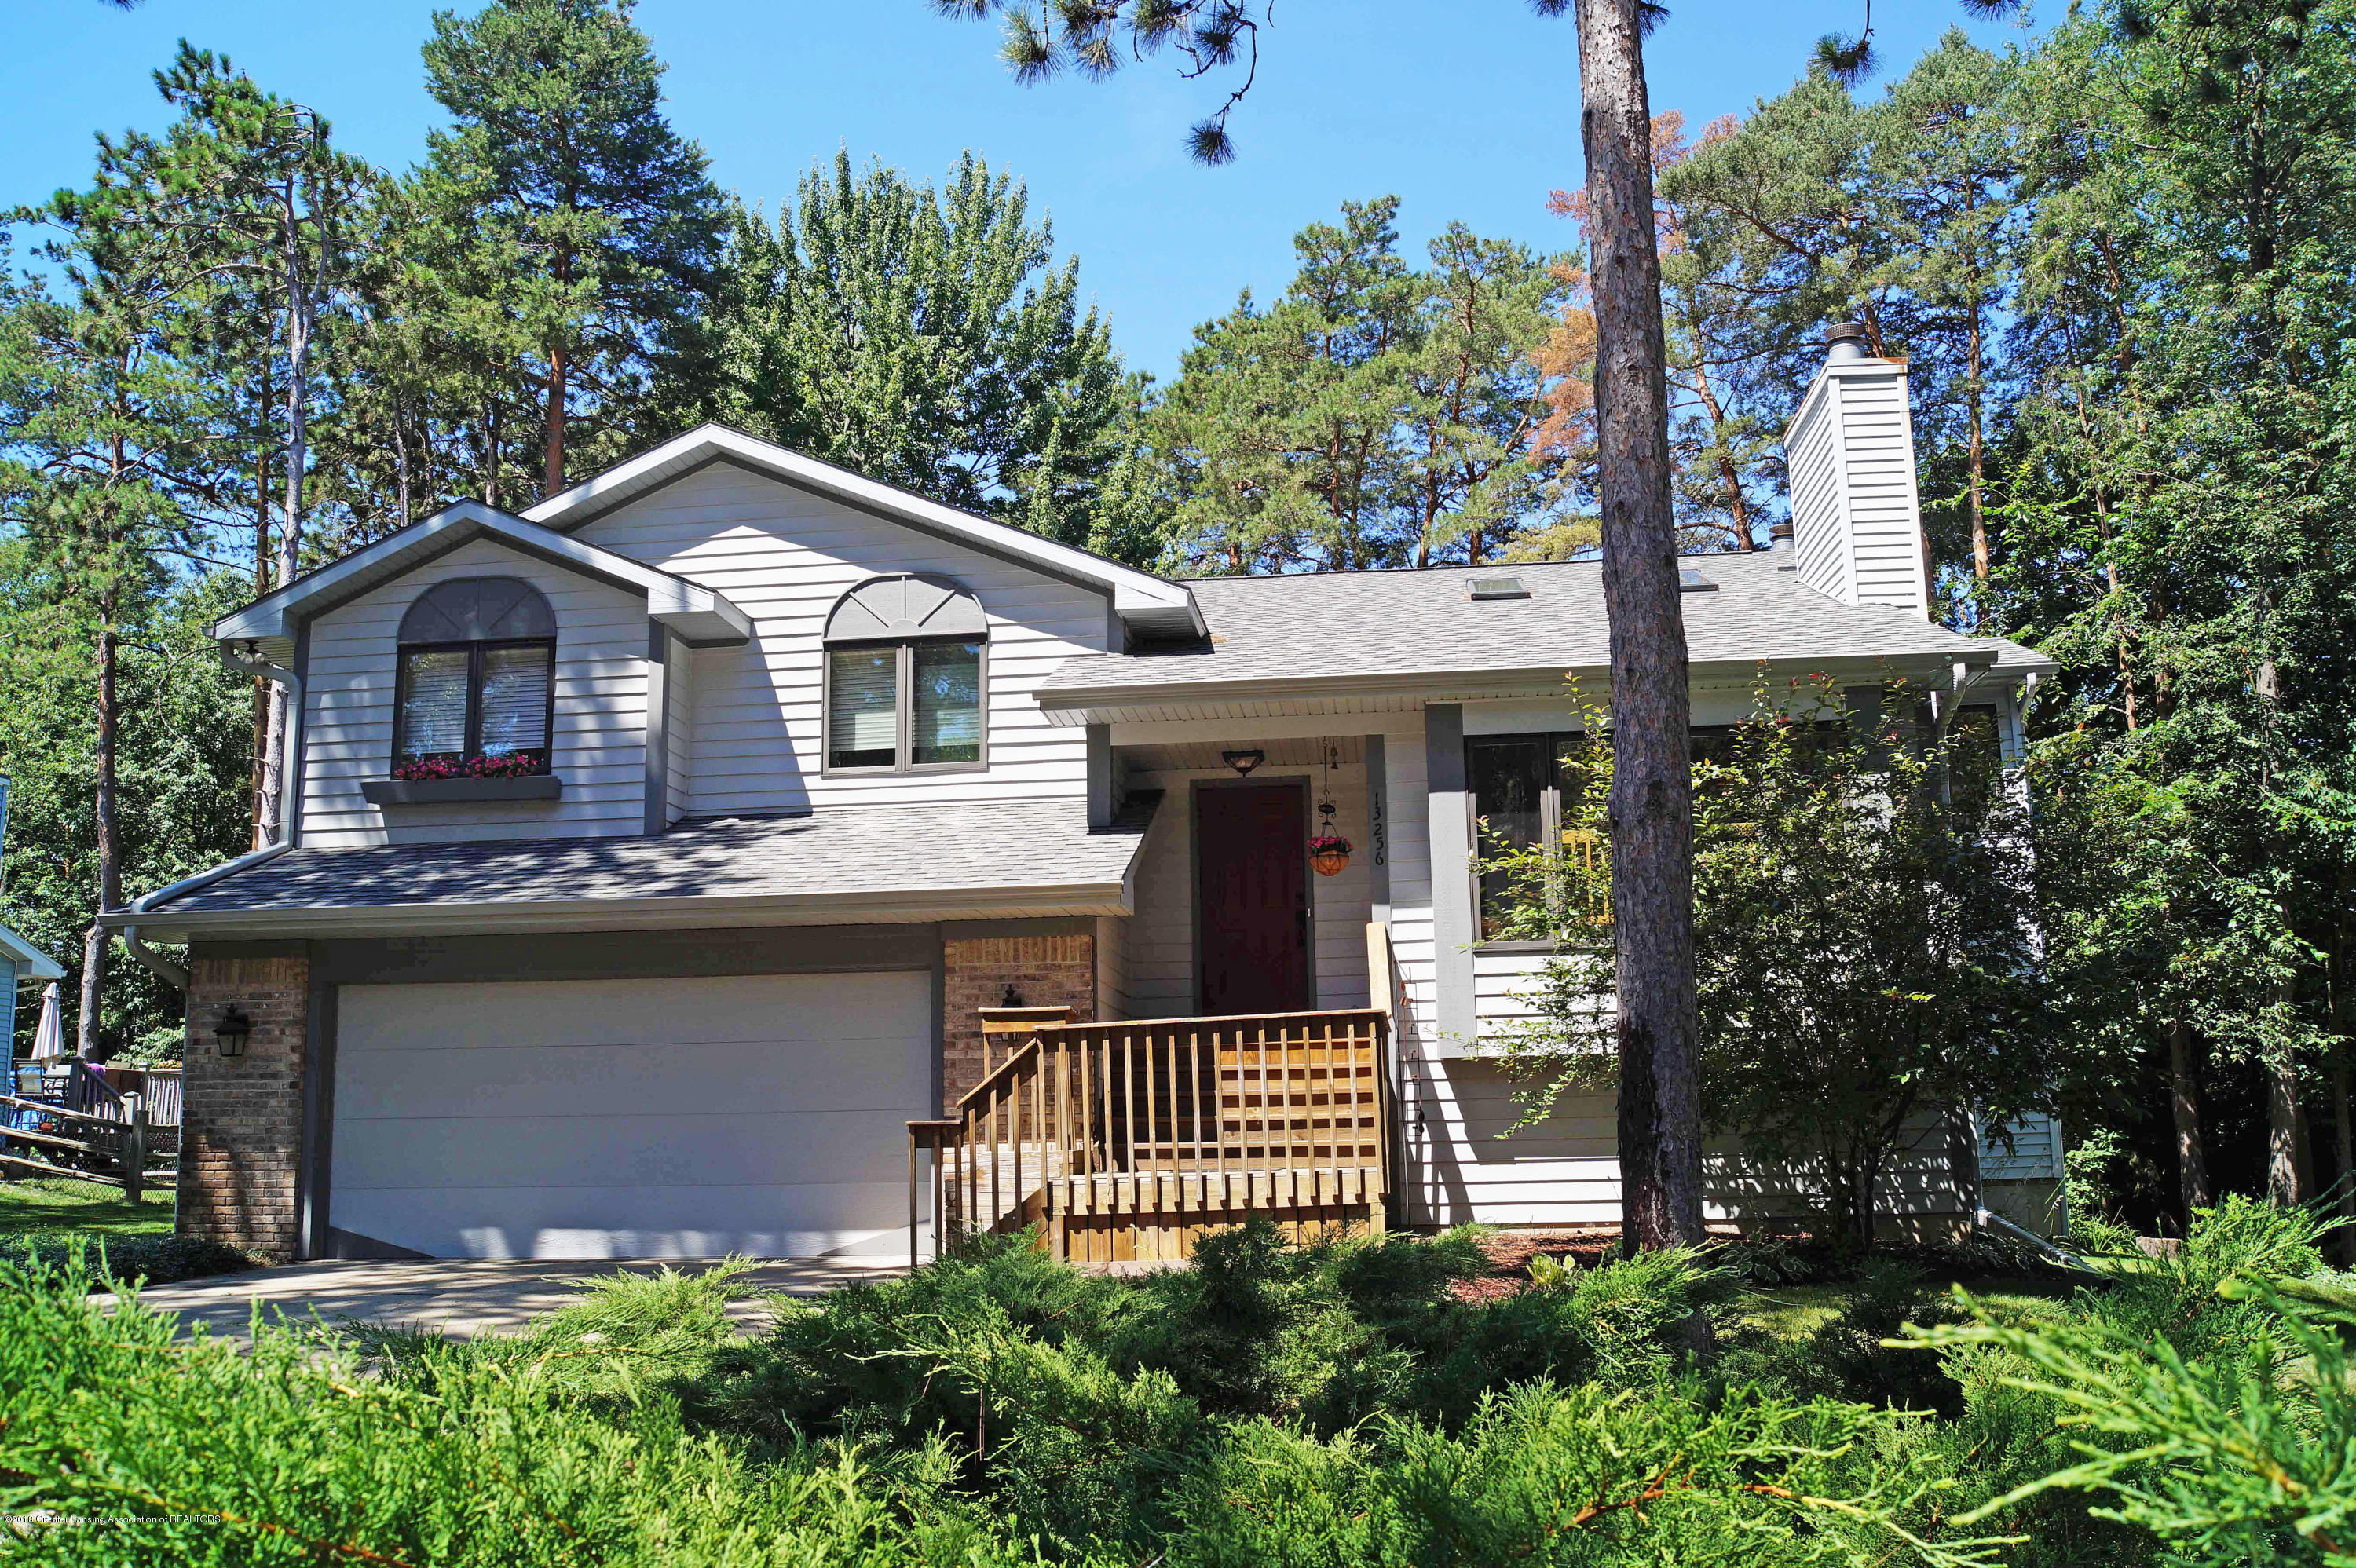 13256 White Pine Dr - FRONT - 1